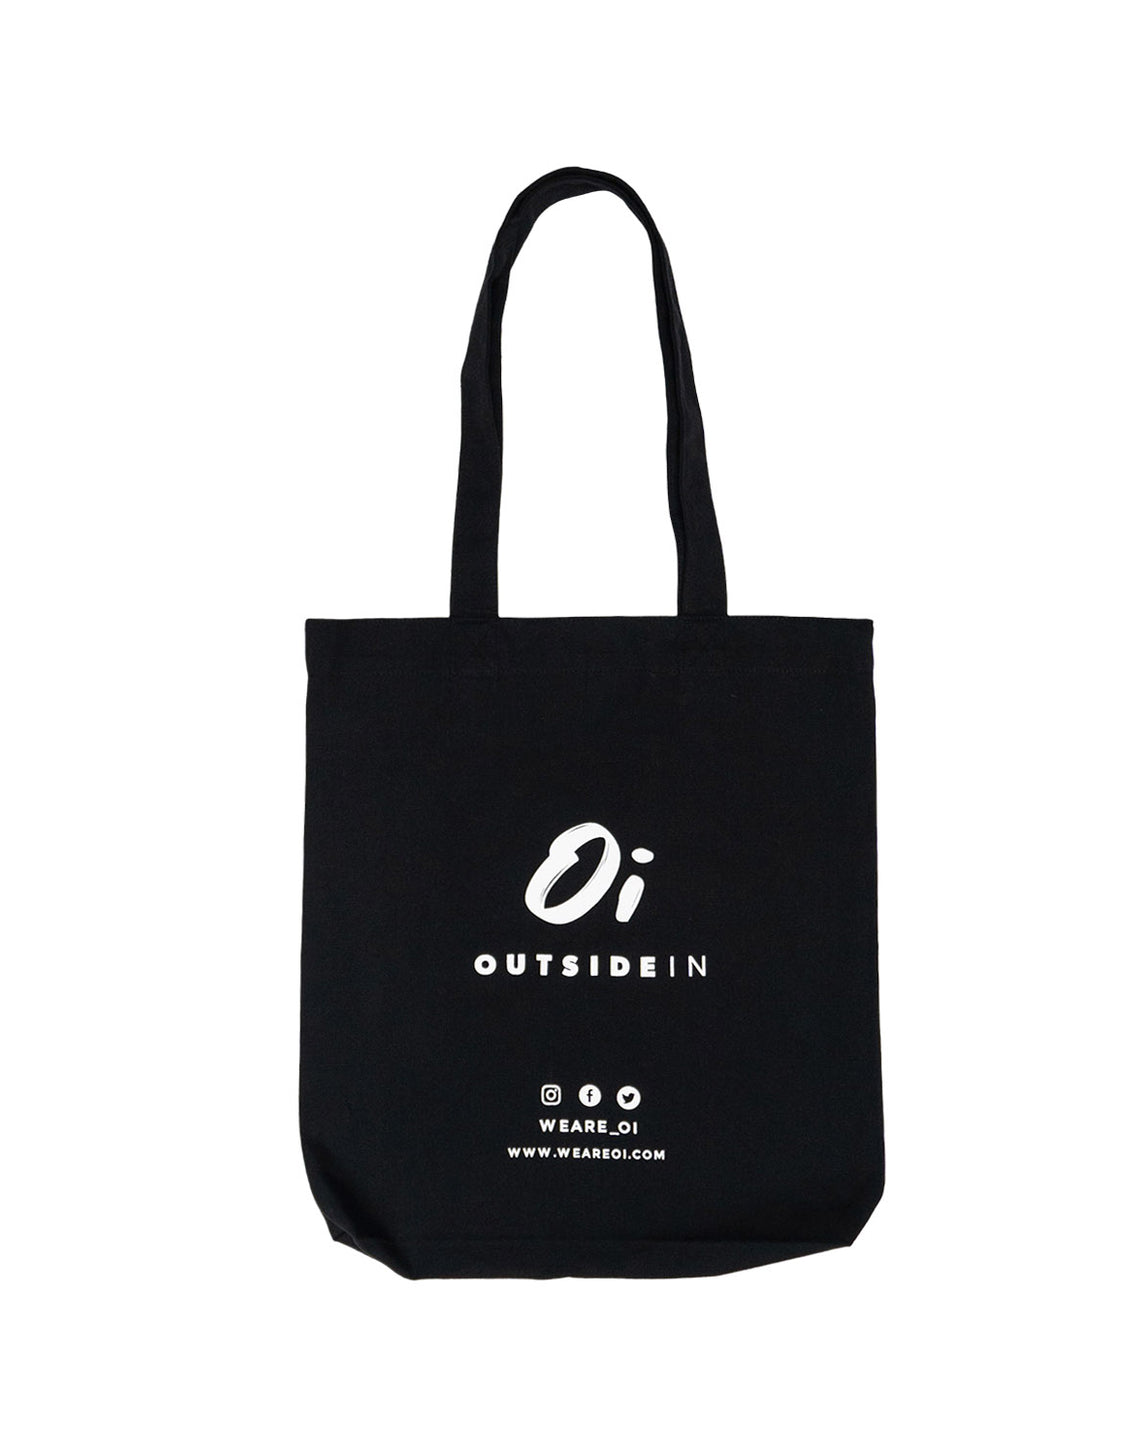 Oi Tote Bag - OutsideIn